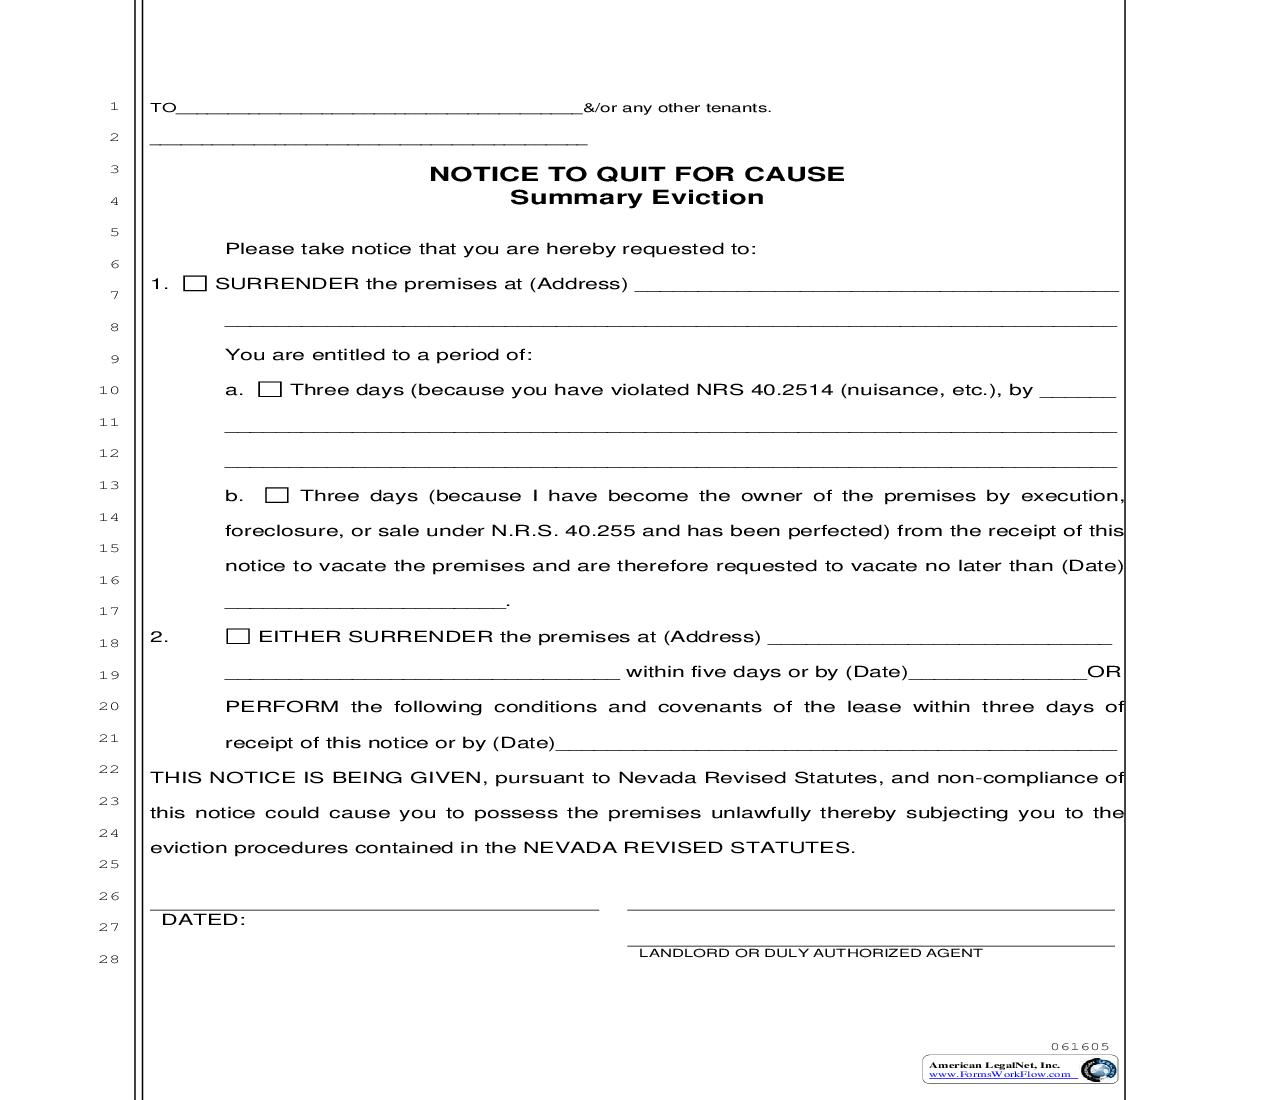 Notice To Quit For Cause - Summary Eviction | Pdf Fpdf Doc Docx | Nevada